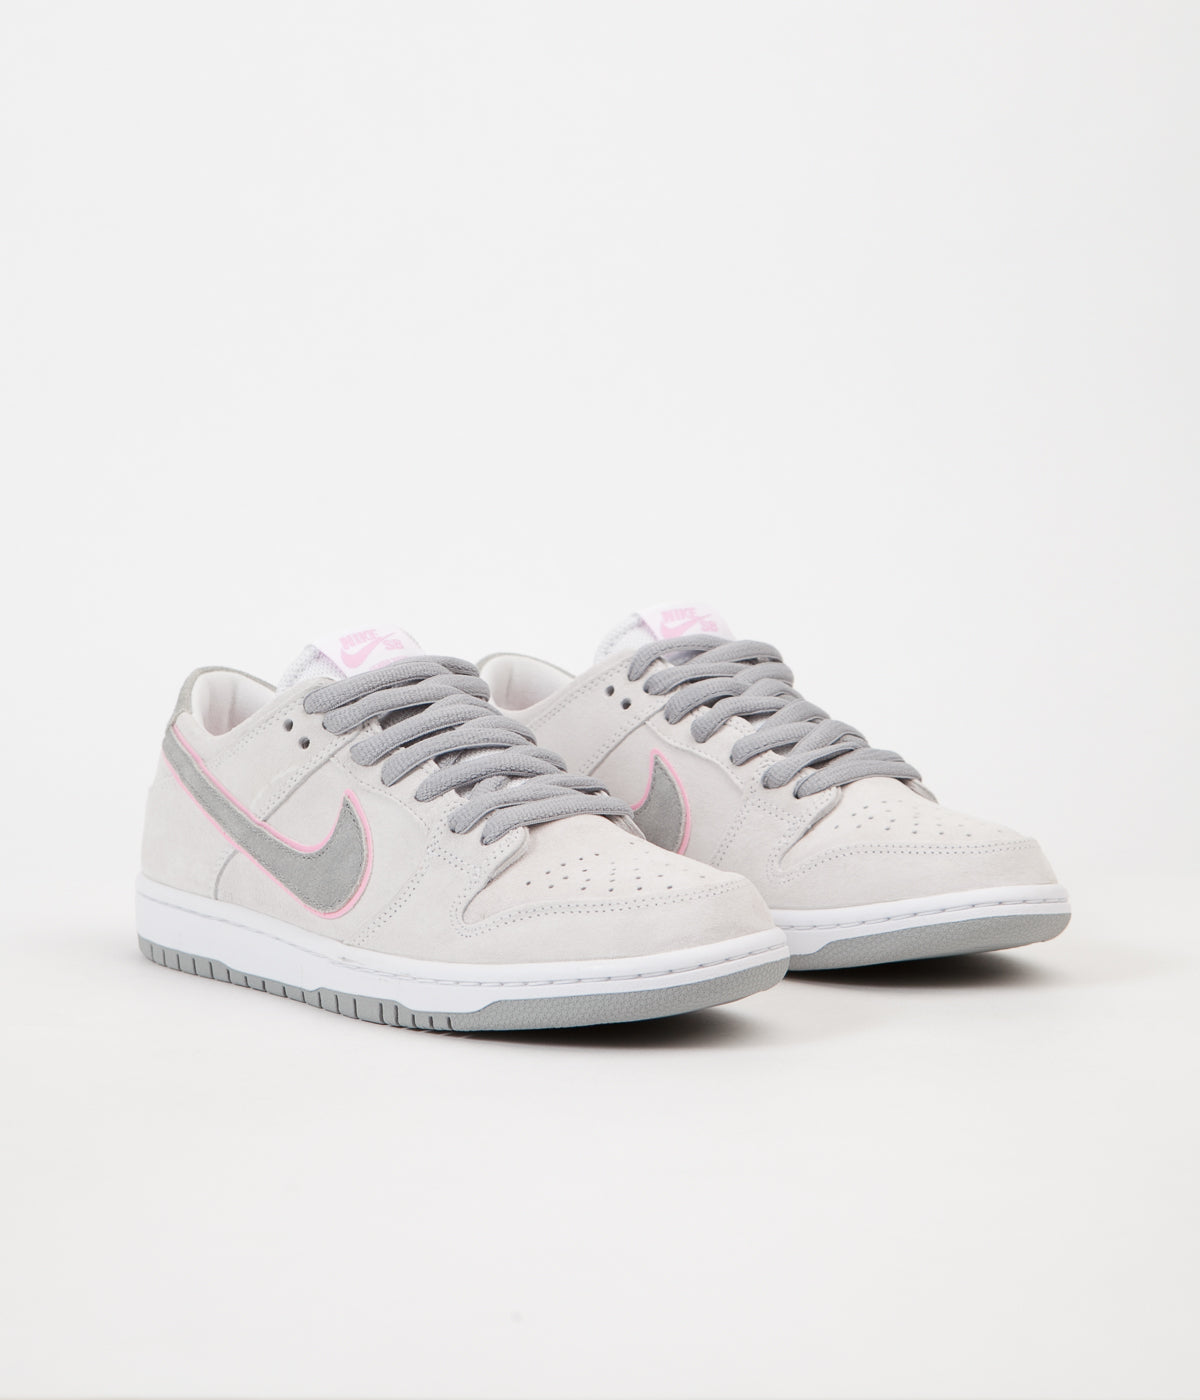 cheaper 9dd24 284c2 ... purchase nike sb dunk low pro ishod wair shoes white perfect pink flat  silver a7e9a 76d74